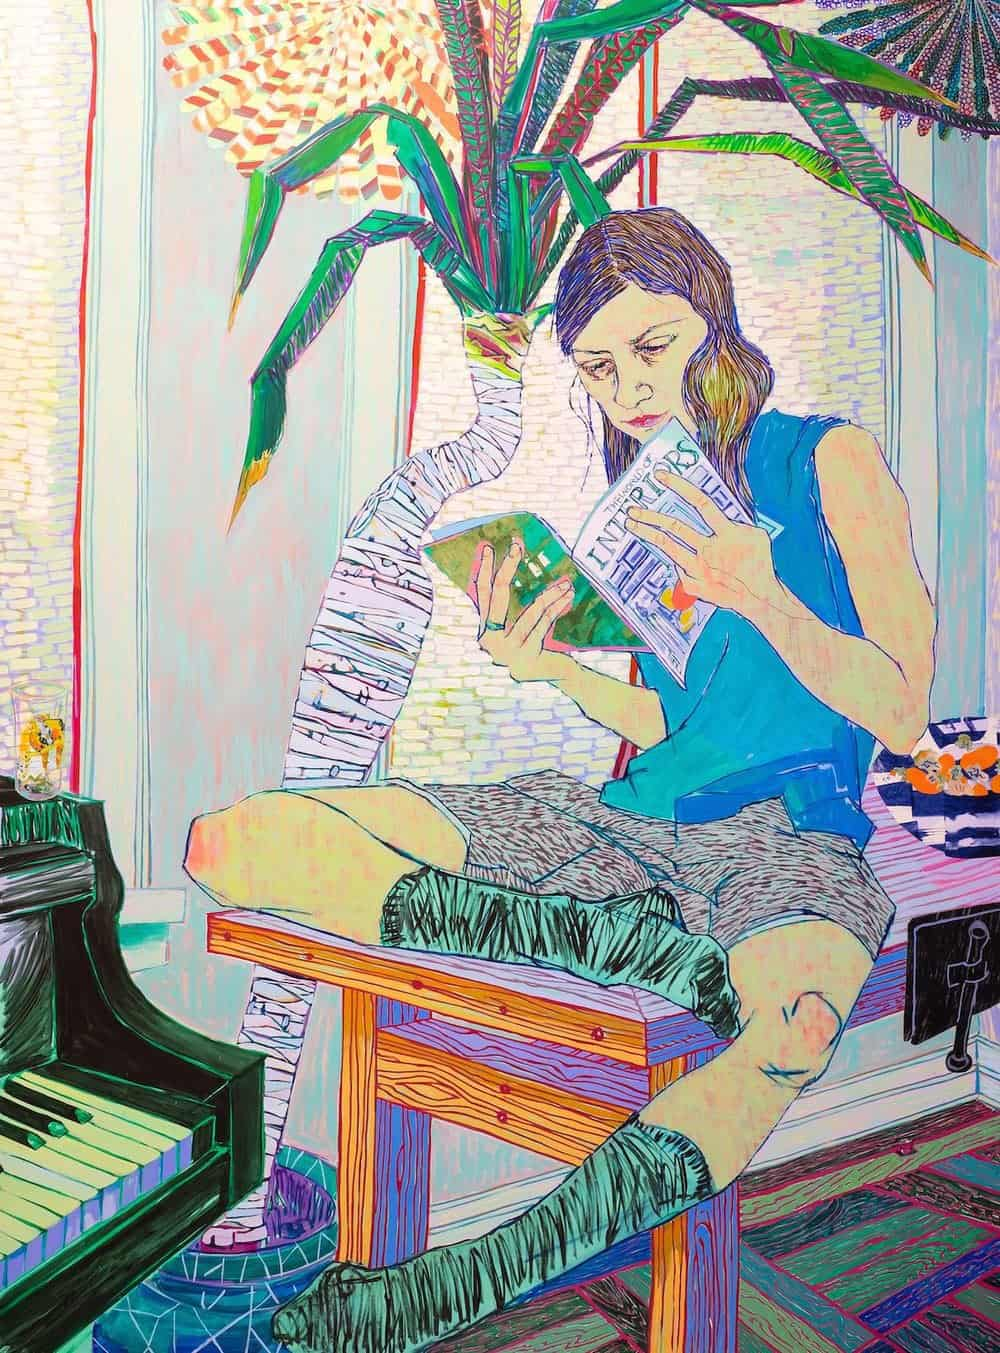 Couch Surfer, 2015, acrylic on canvas. 96 x 72 in.